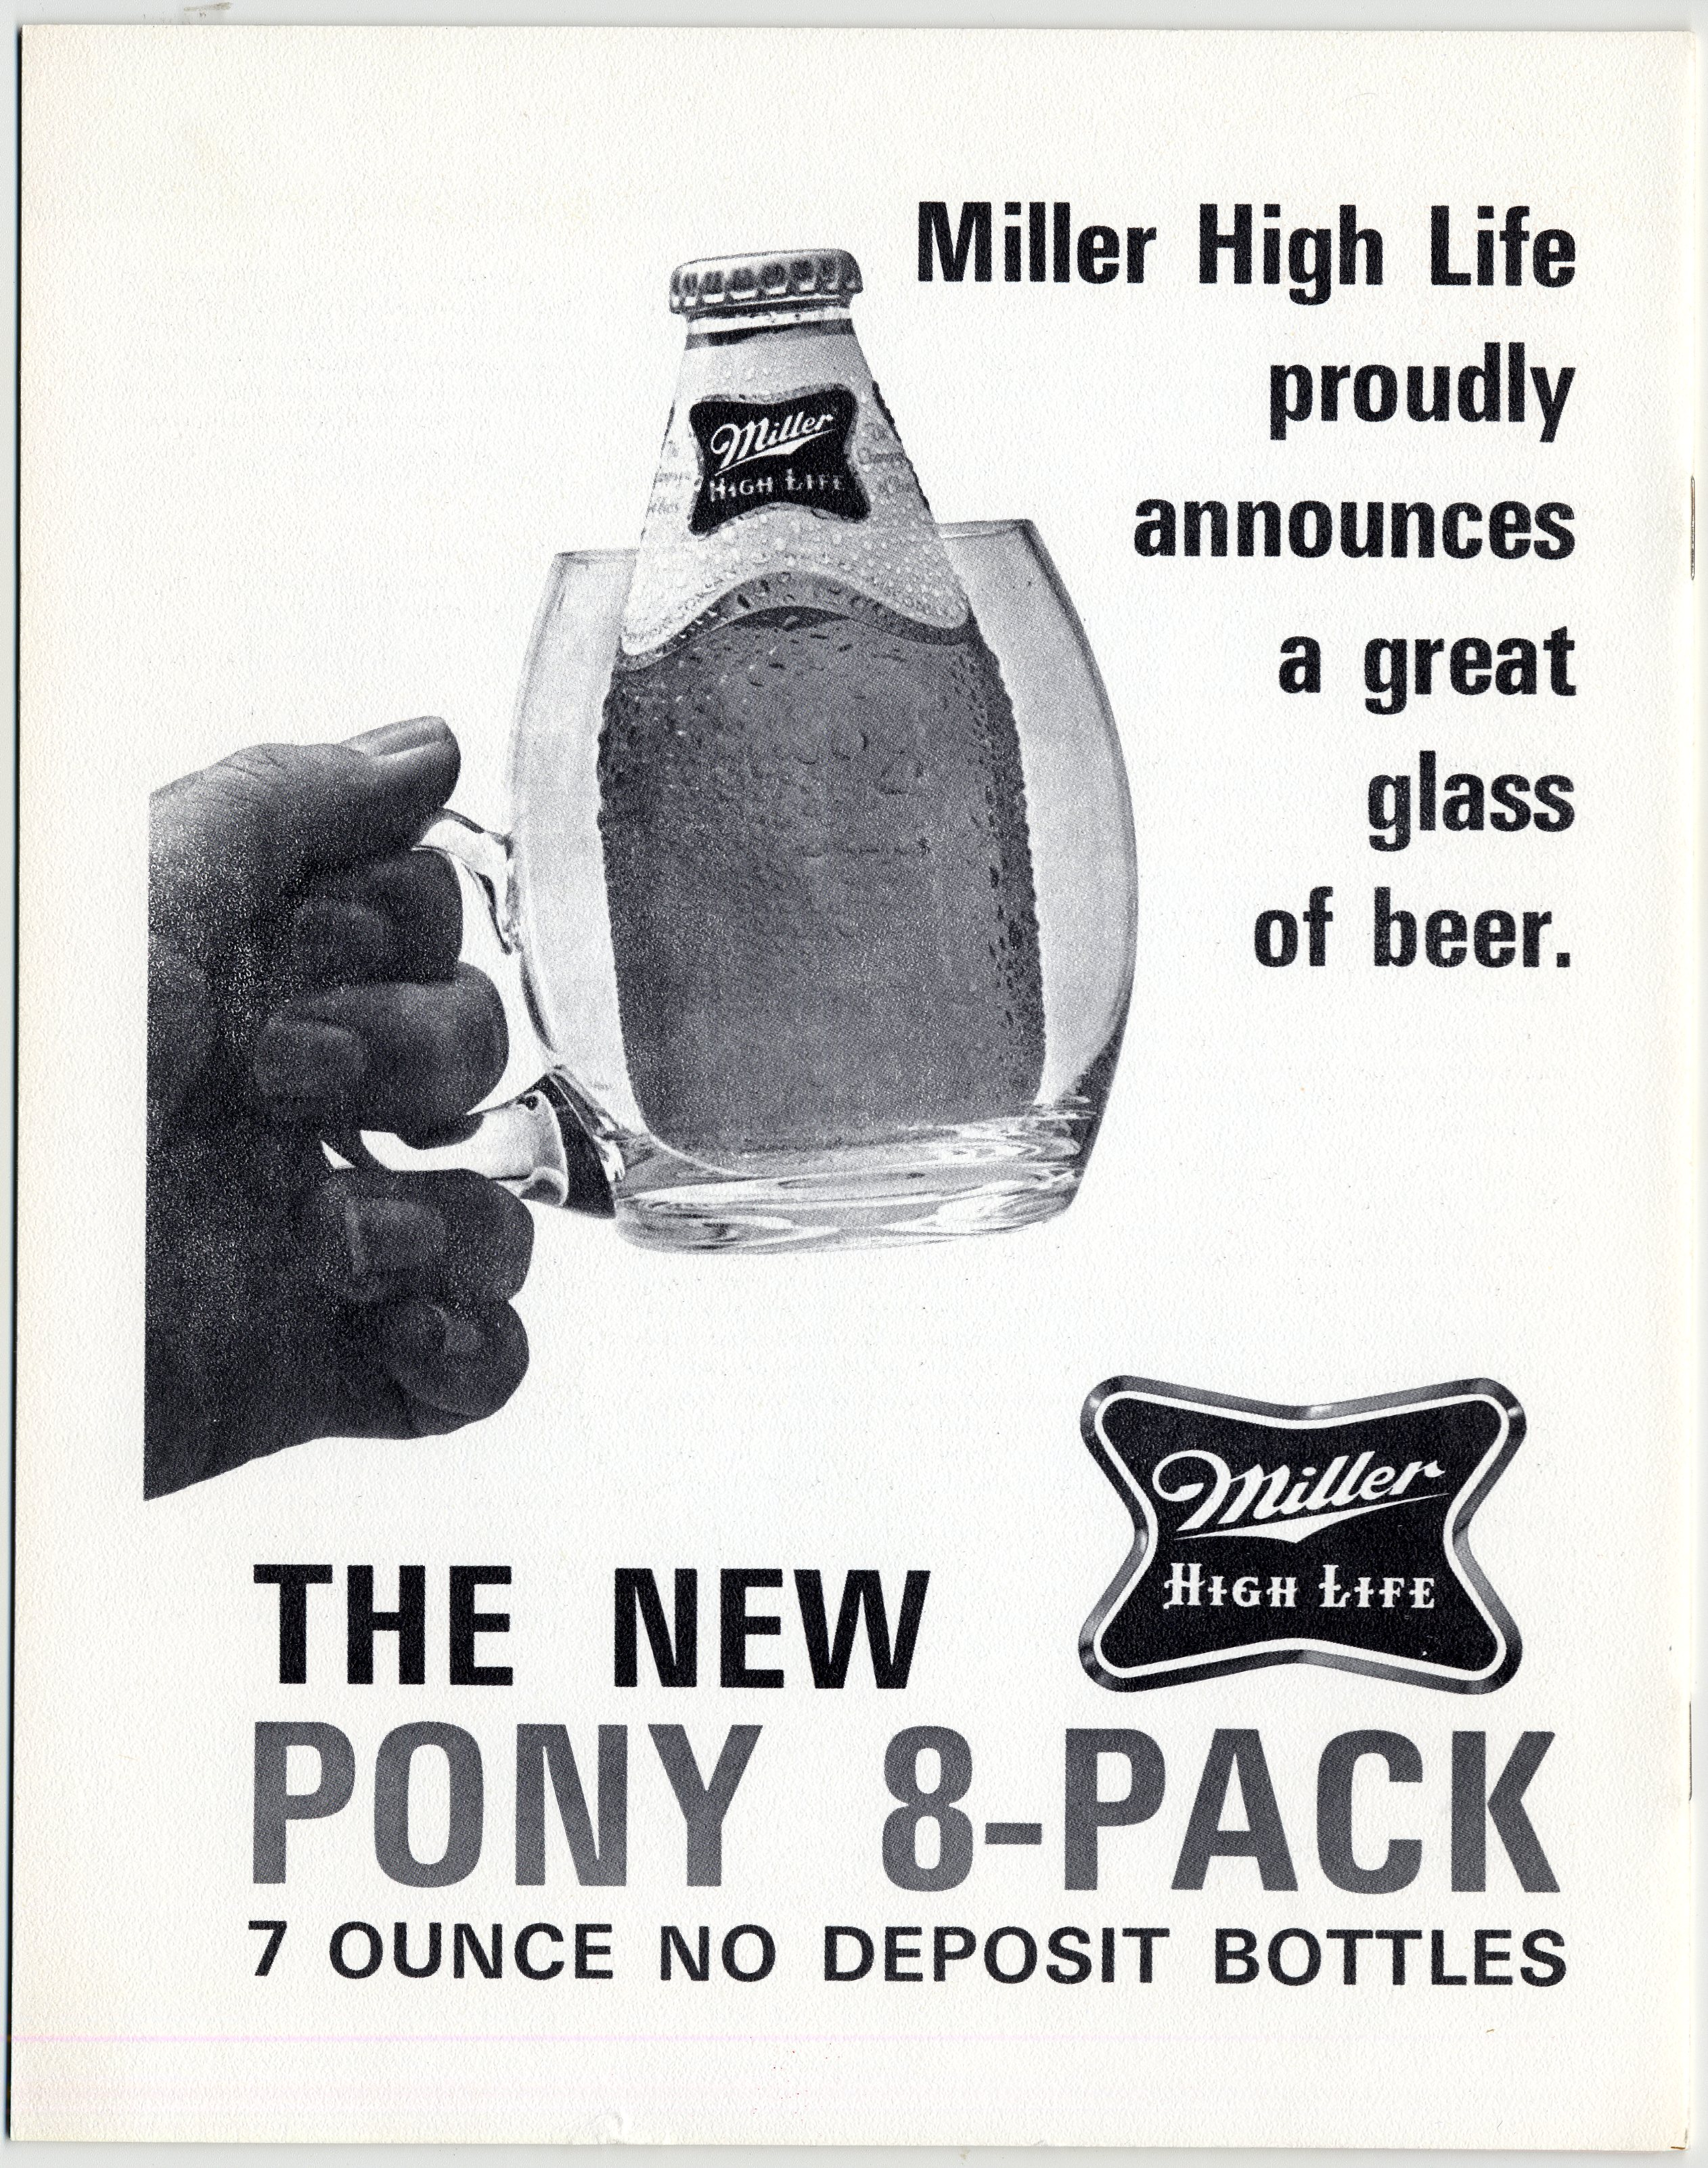 Miller High Life pony bottles ad 1972